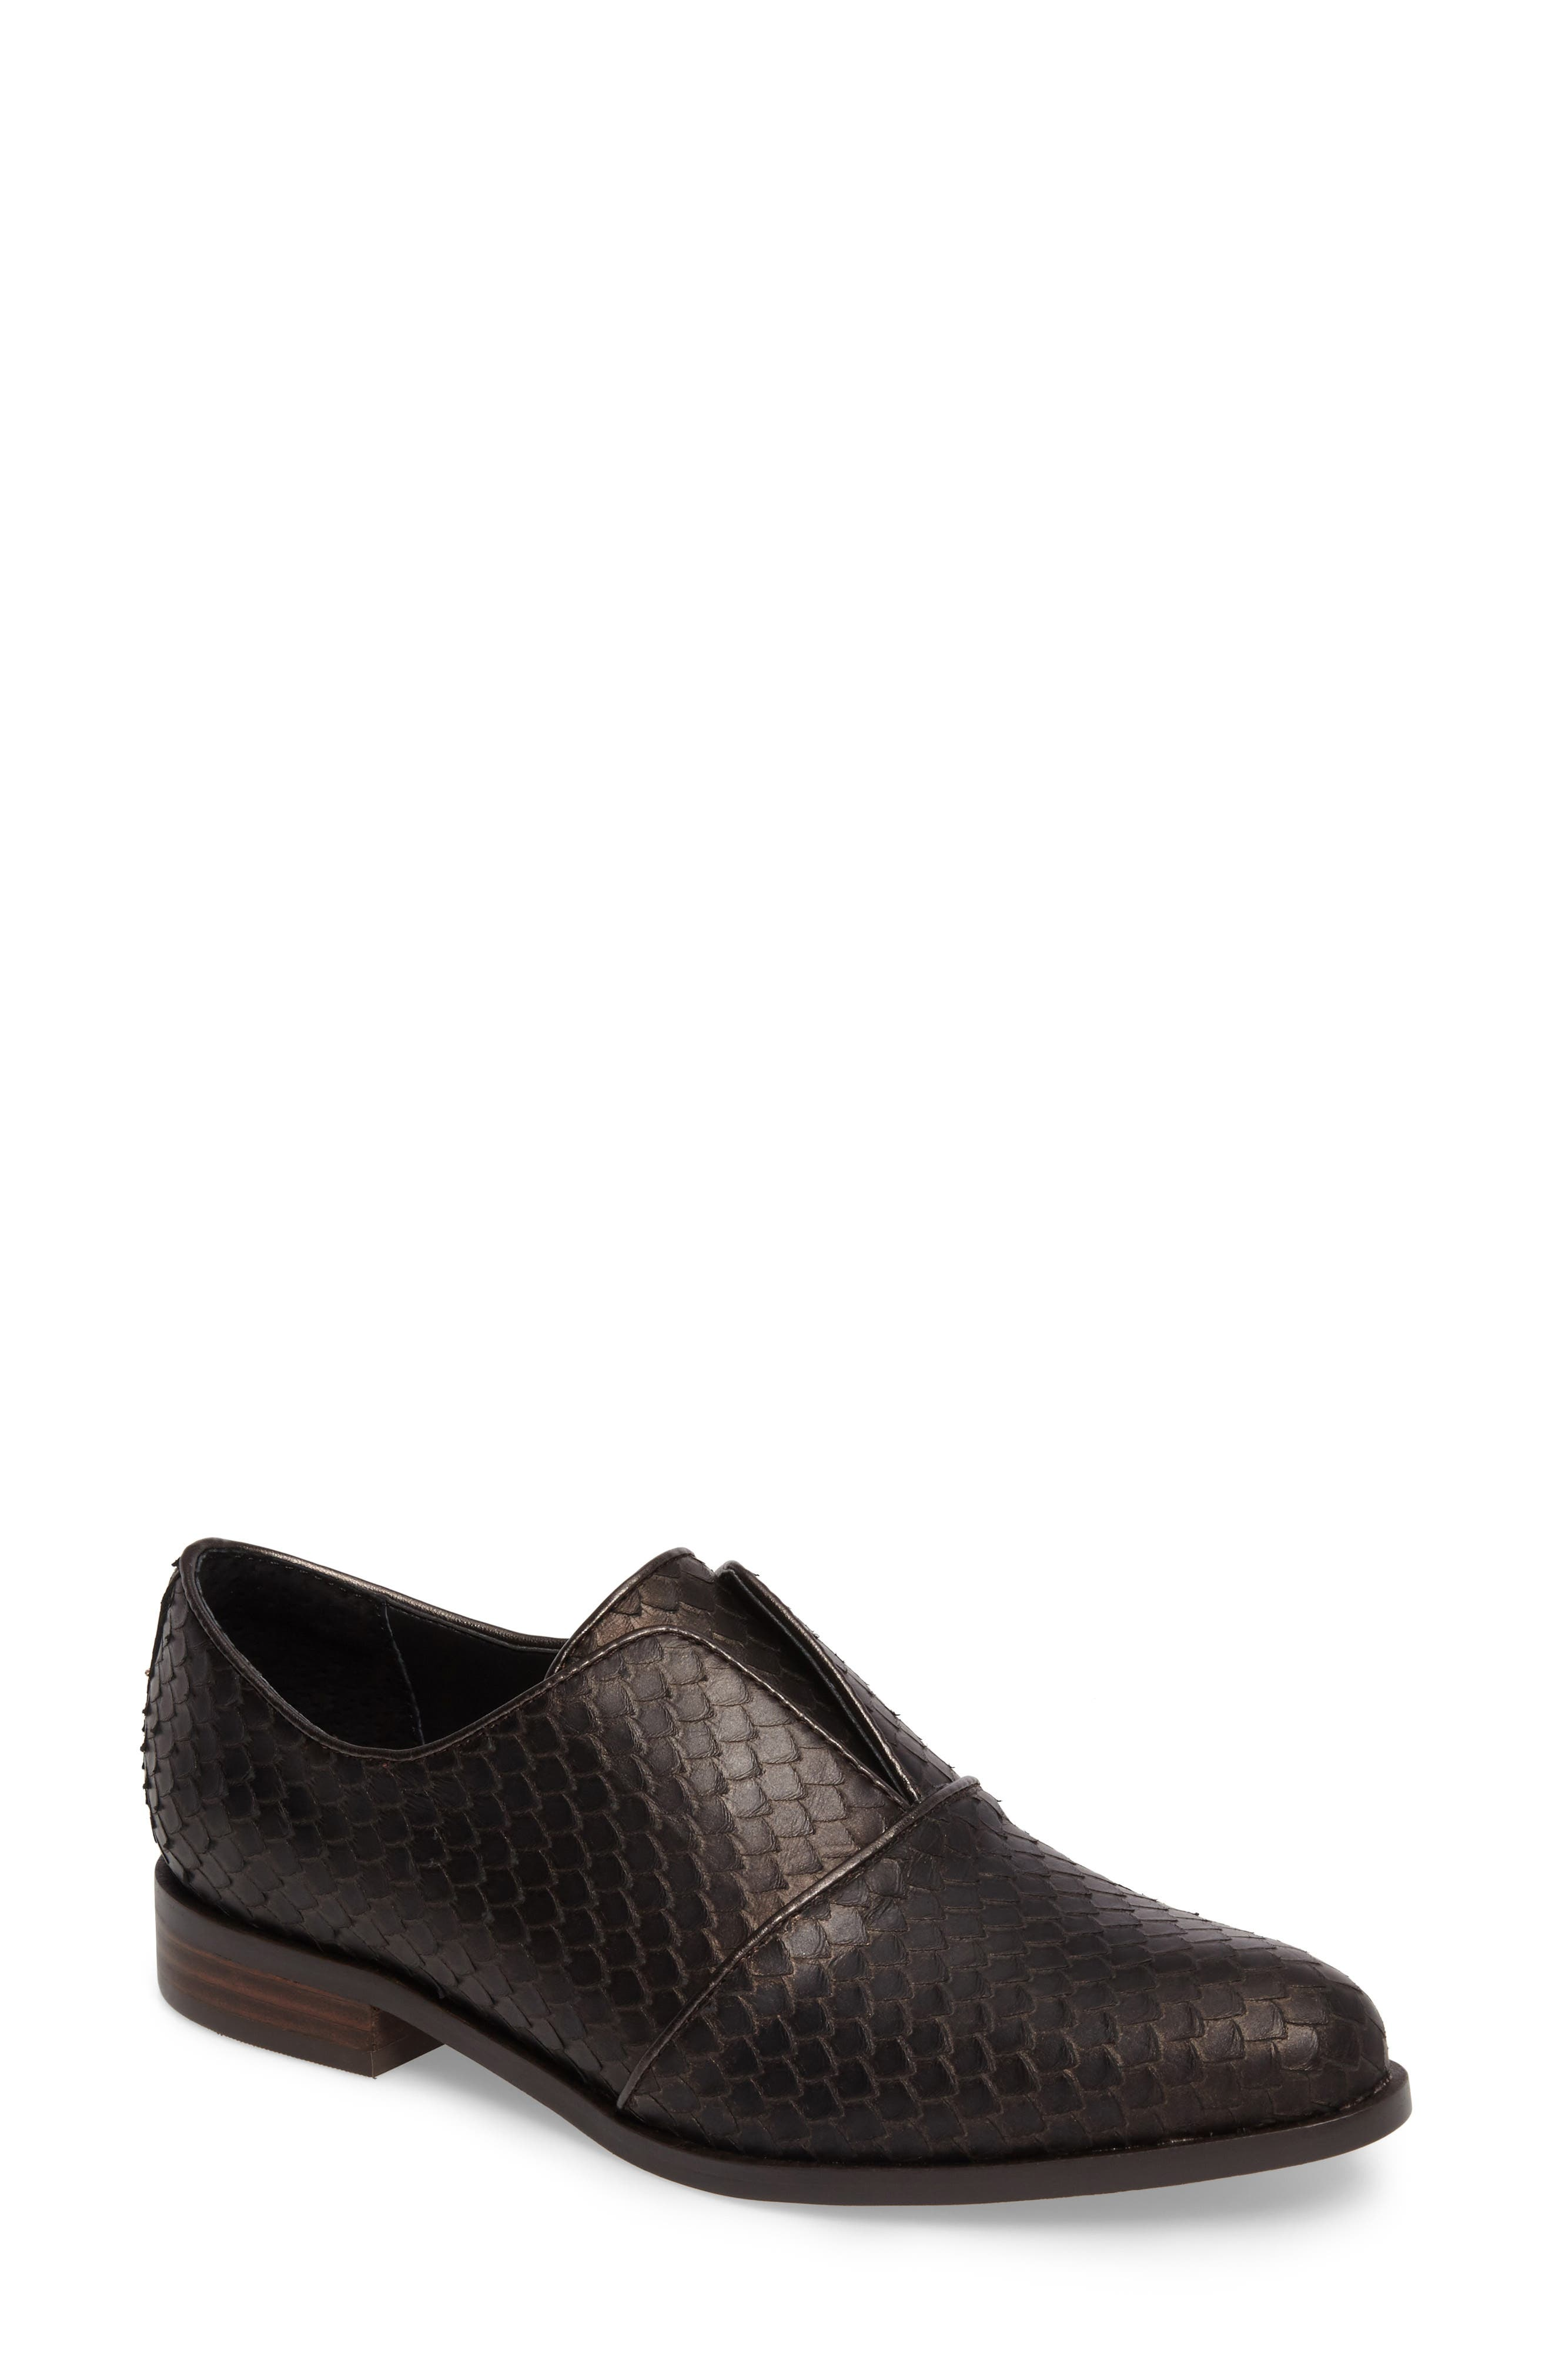 Isola Maria Slip-On Oxford,                             Main thumbnail 1, color,                             T. MORO BROWN LEATHER